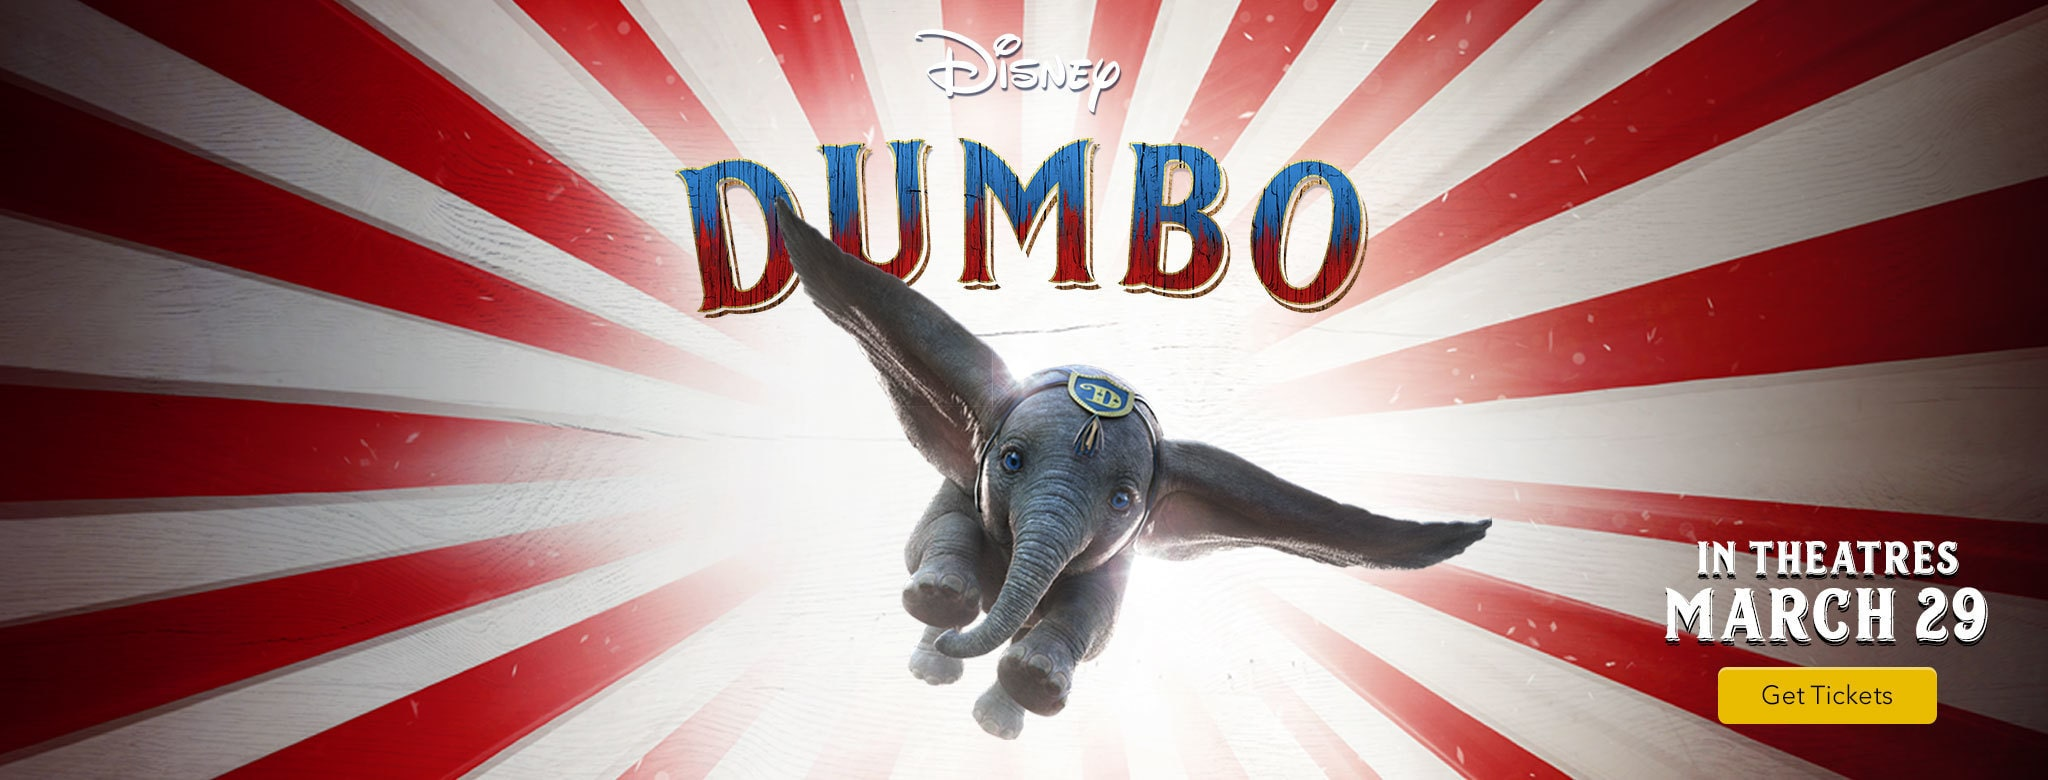 Disney's Dumbo -  In Theaters March 29 - Get Tickets